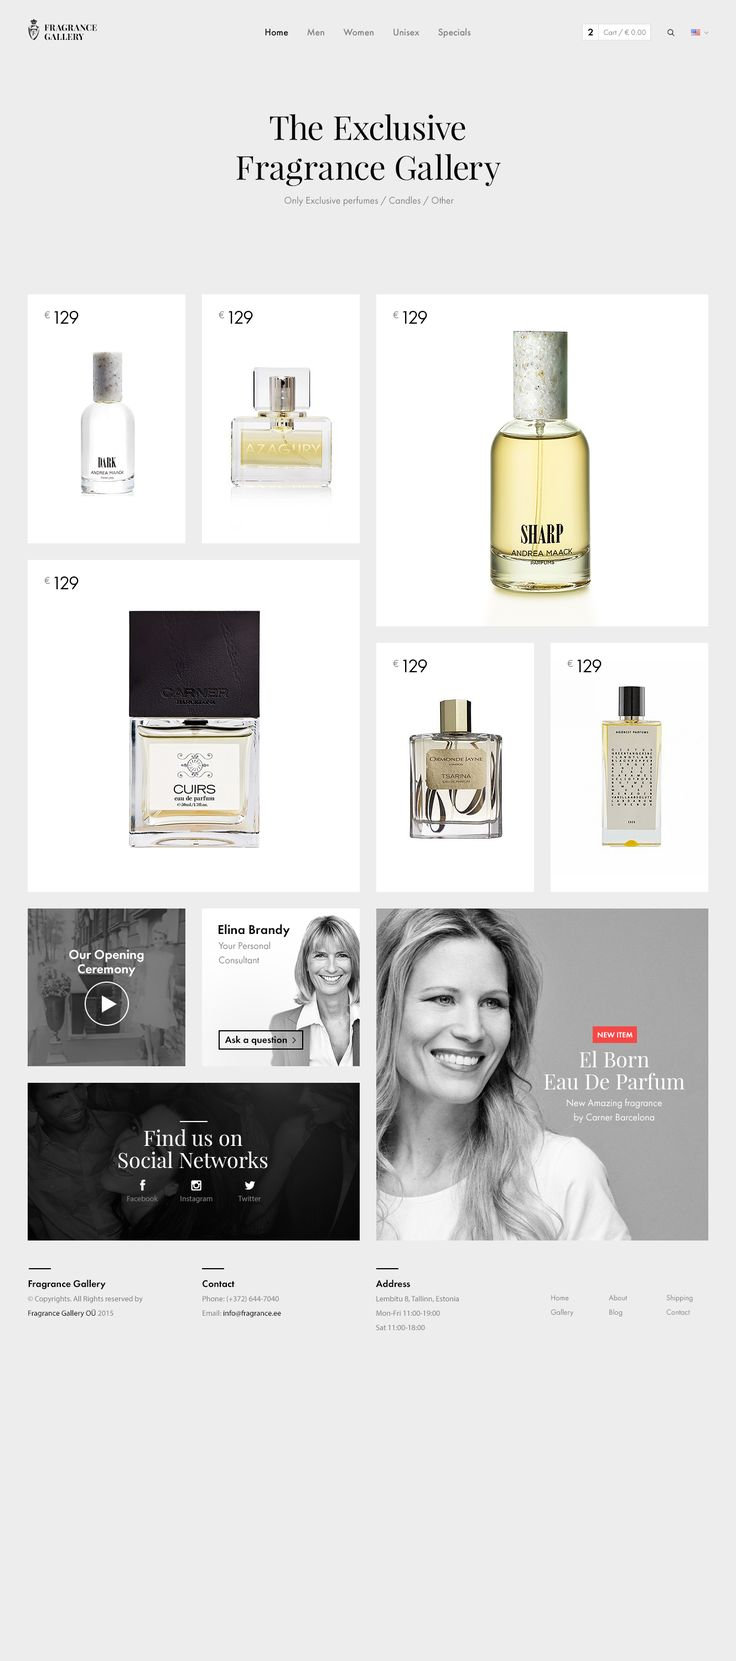 Fragrance Gallery Grid Based Website Design